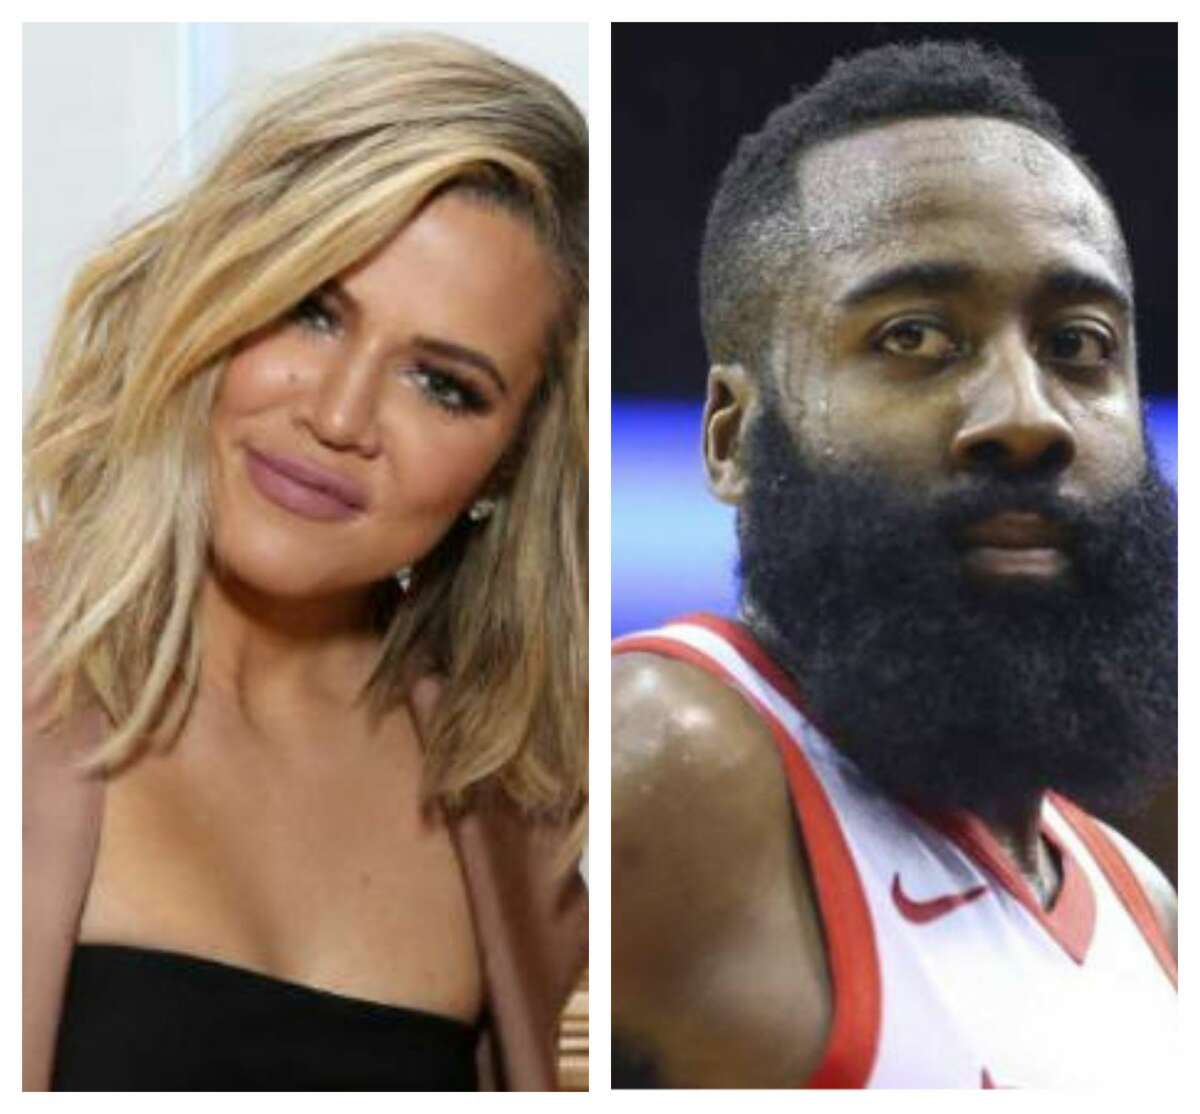 Khloe Kardashian hosted a birthday party for James Harden at The Engine Room.